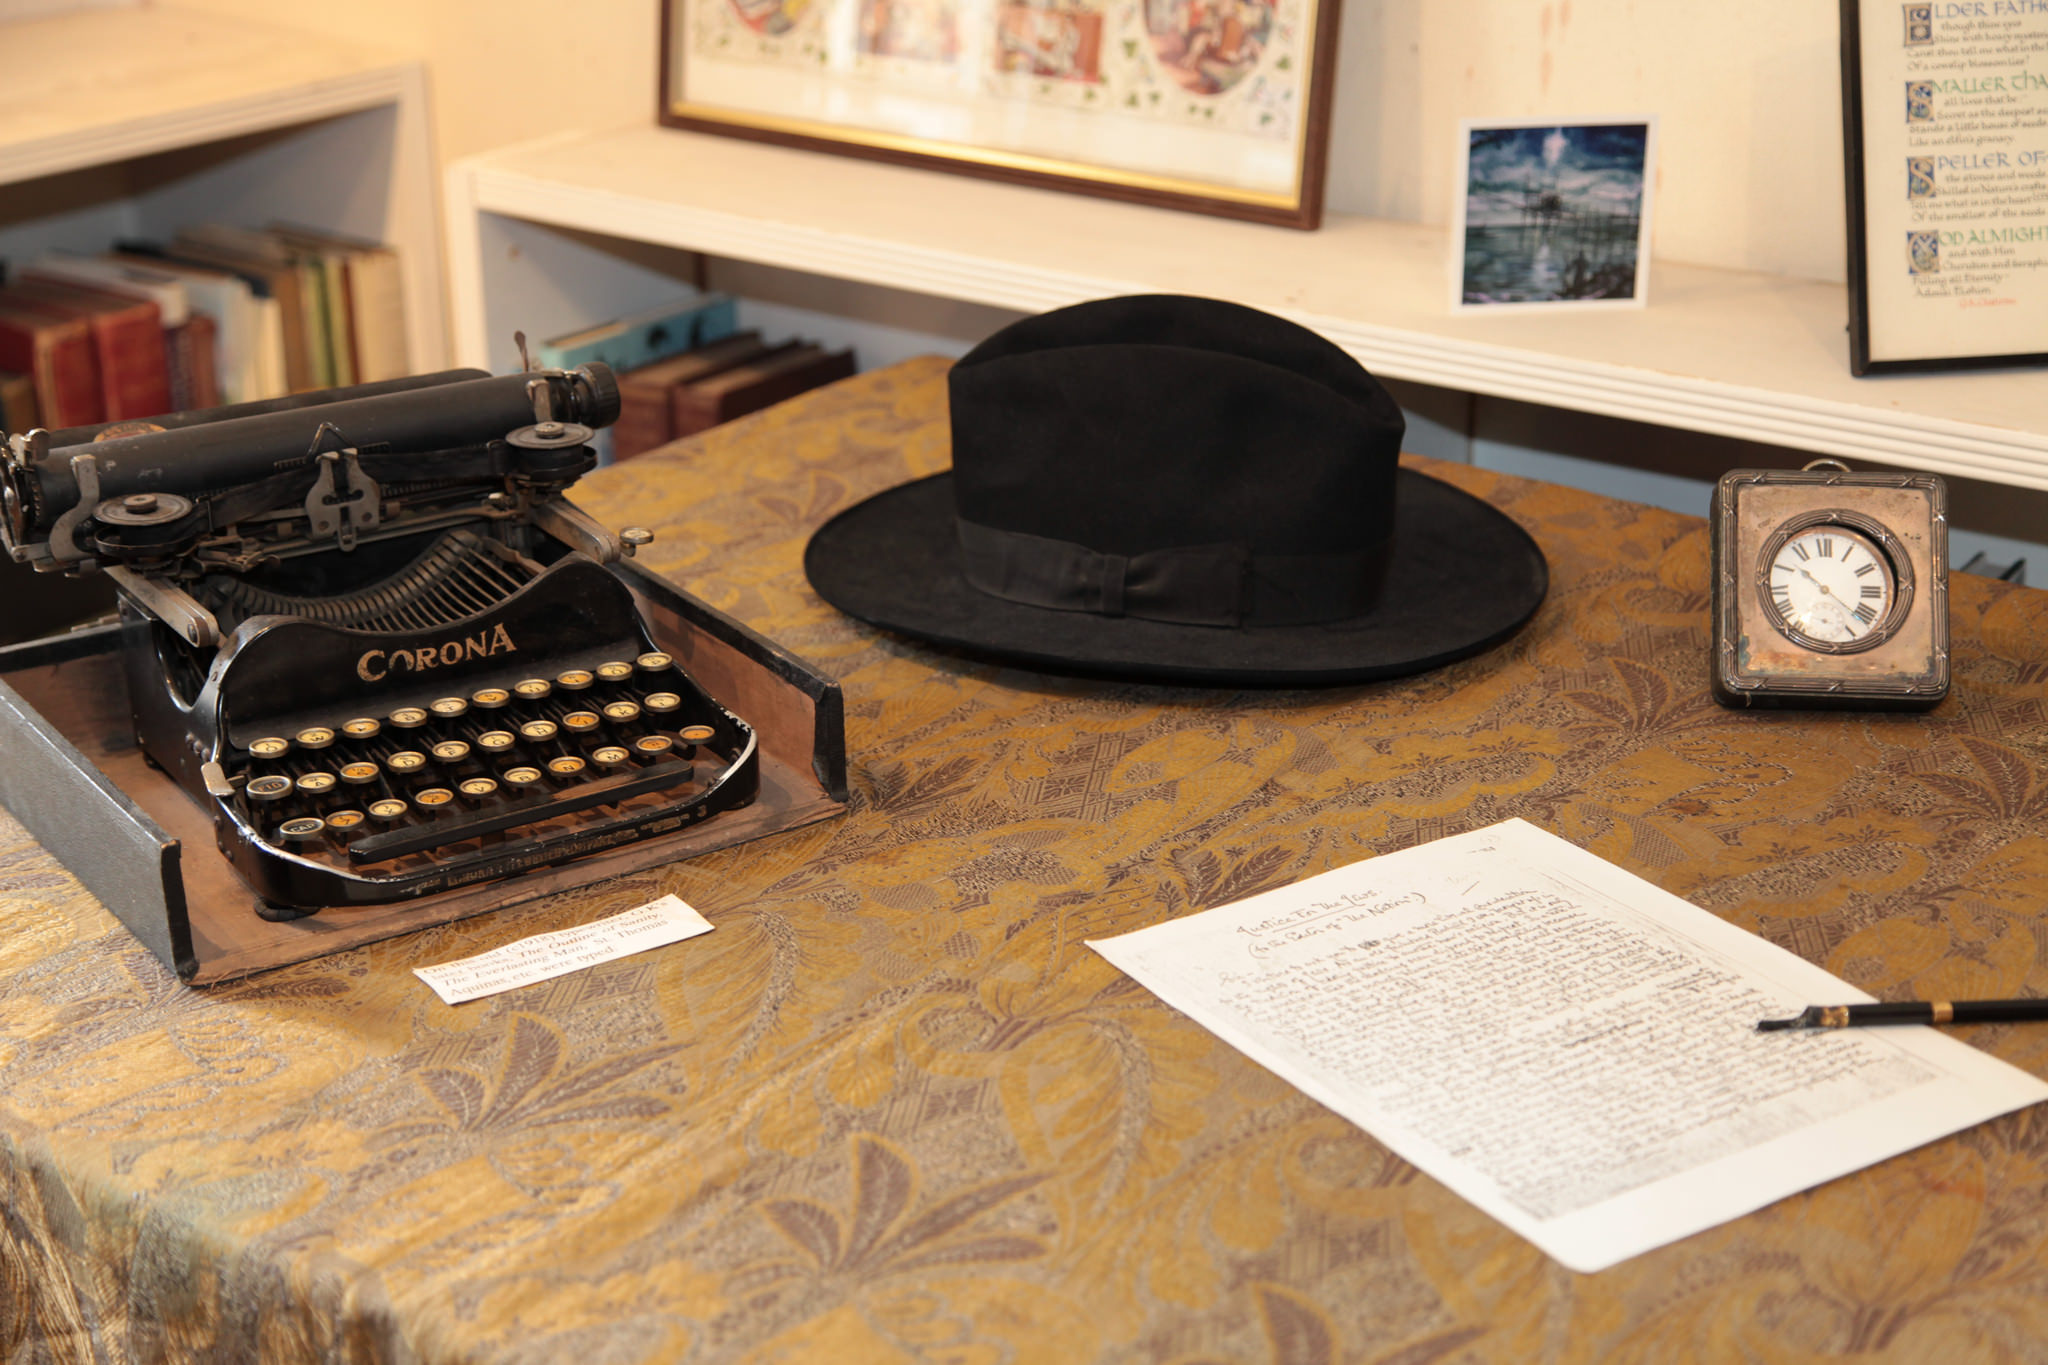 ing the home and grave of g k chesterton tgc chesterton s typewriter and hat copy mmxv br joseph bailham op